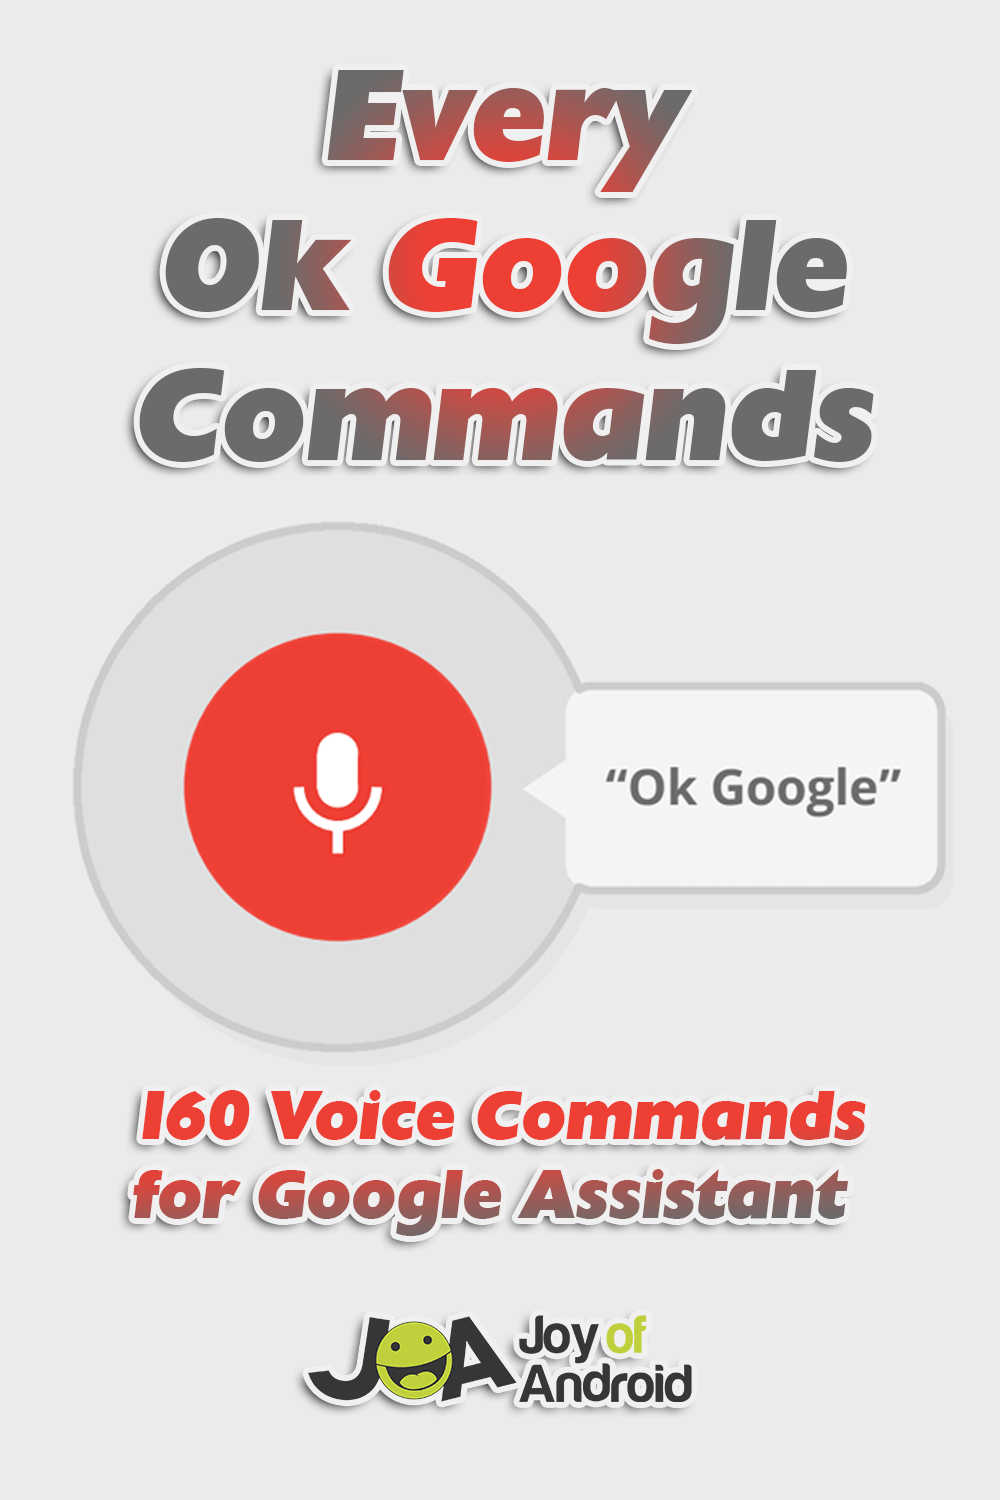 Ok Google Commands - First Image